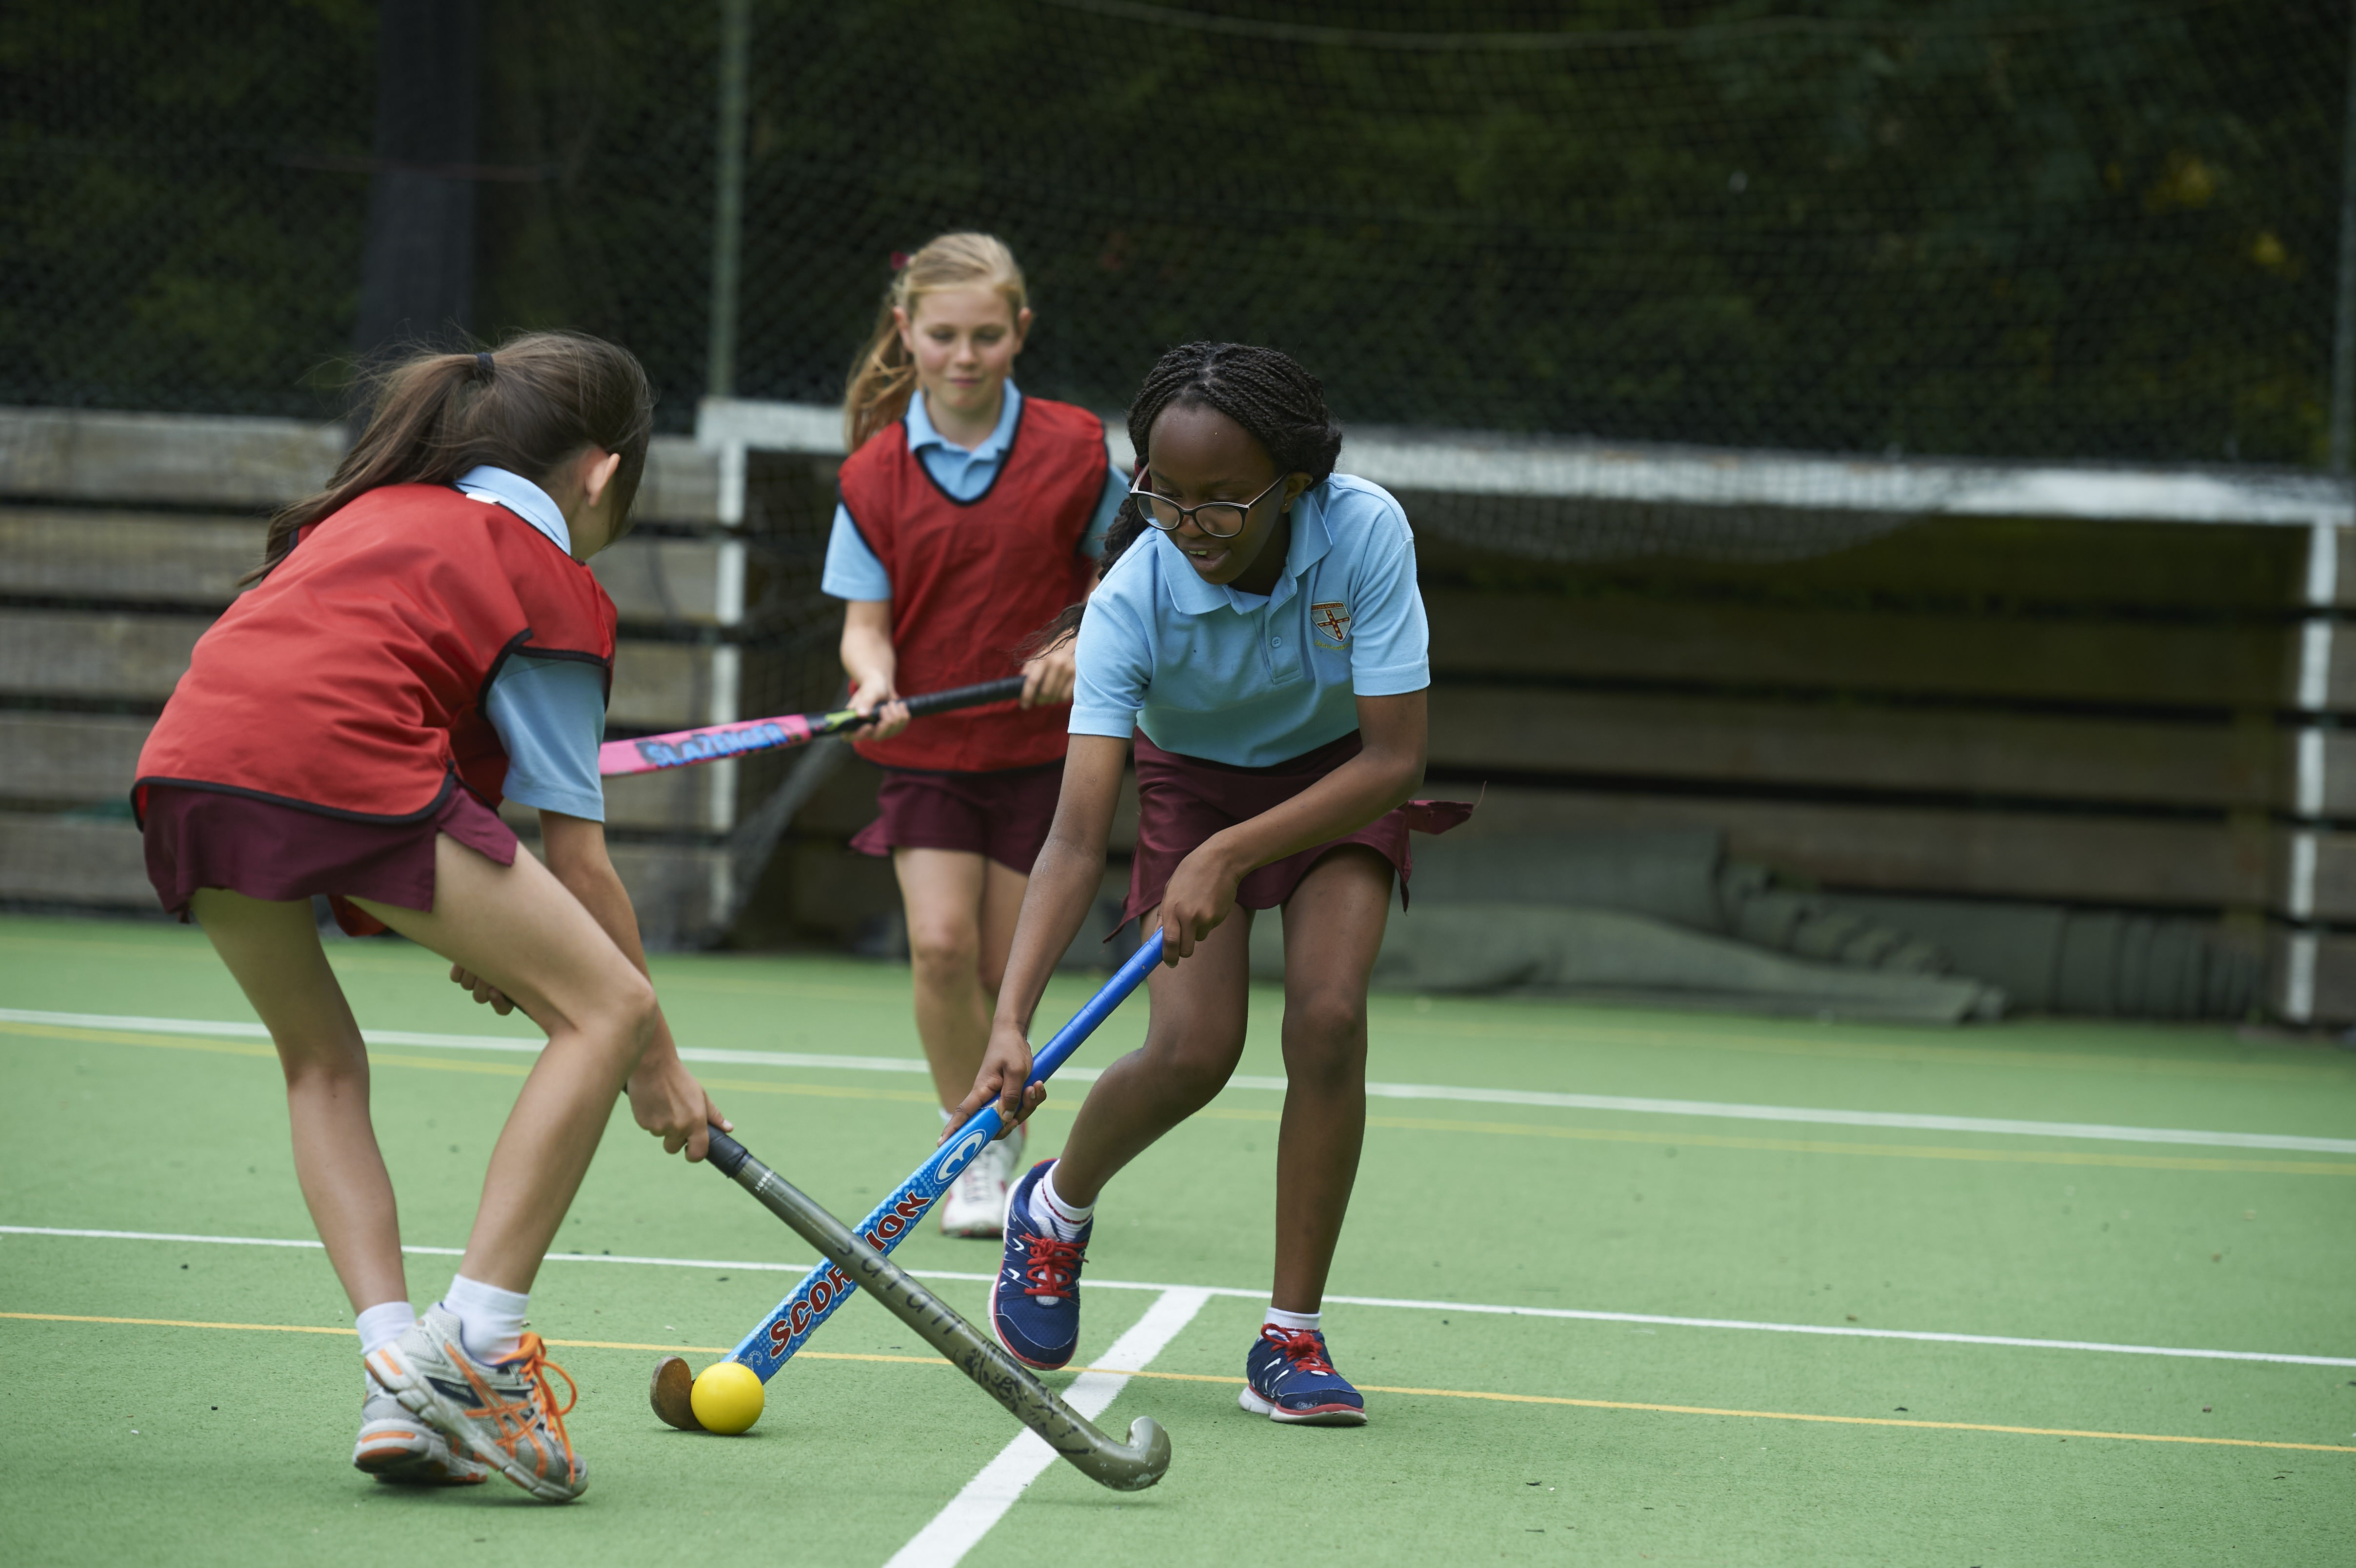 Sport at Duncombe School